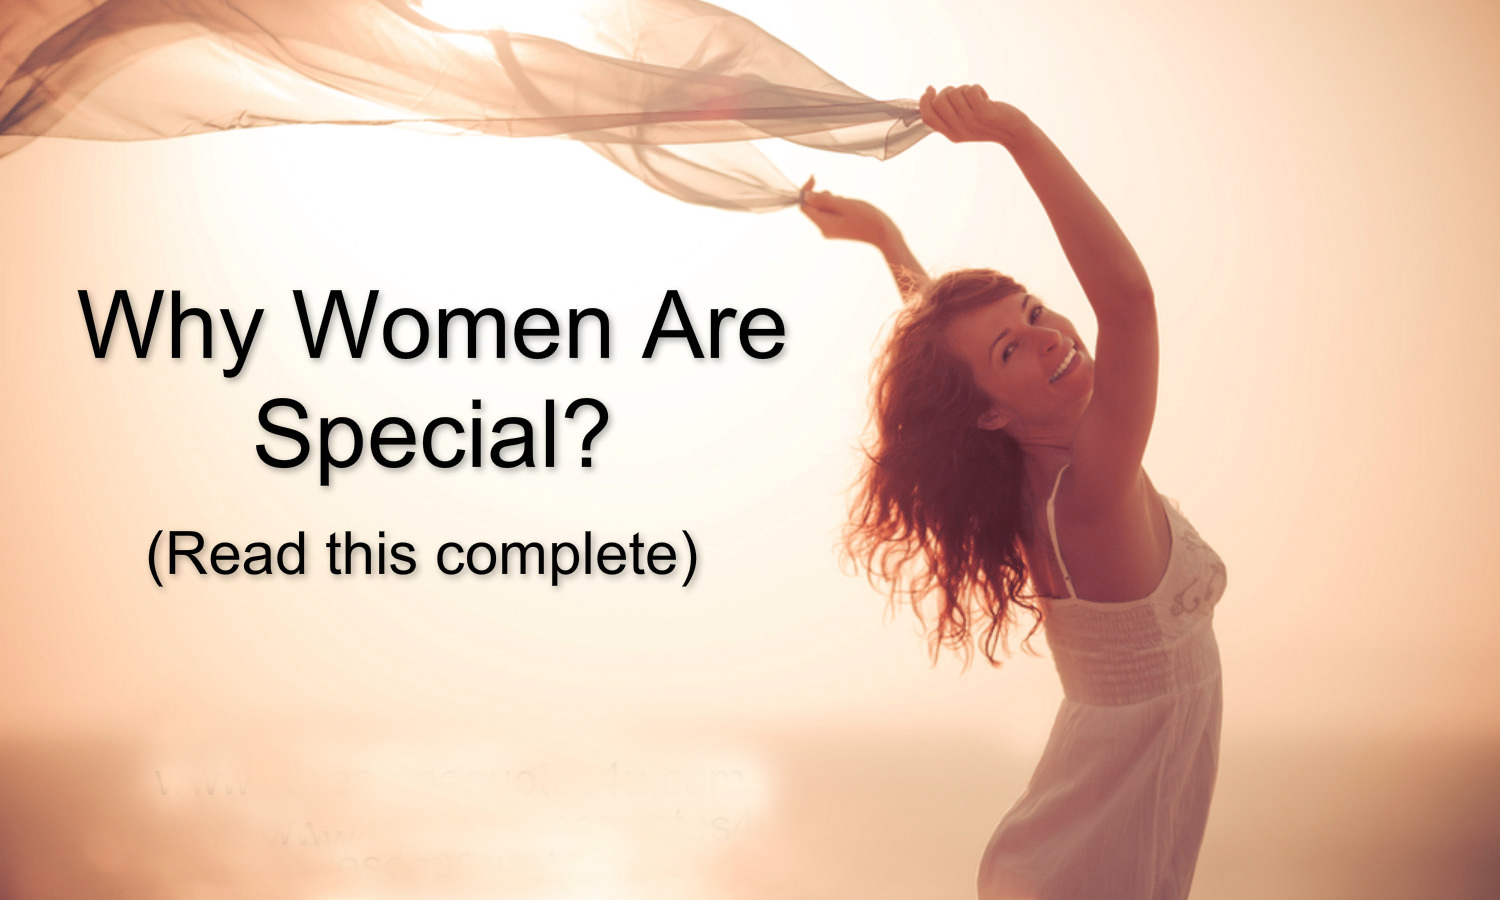 women are special